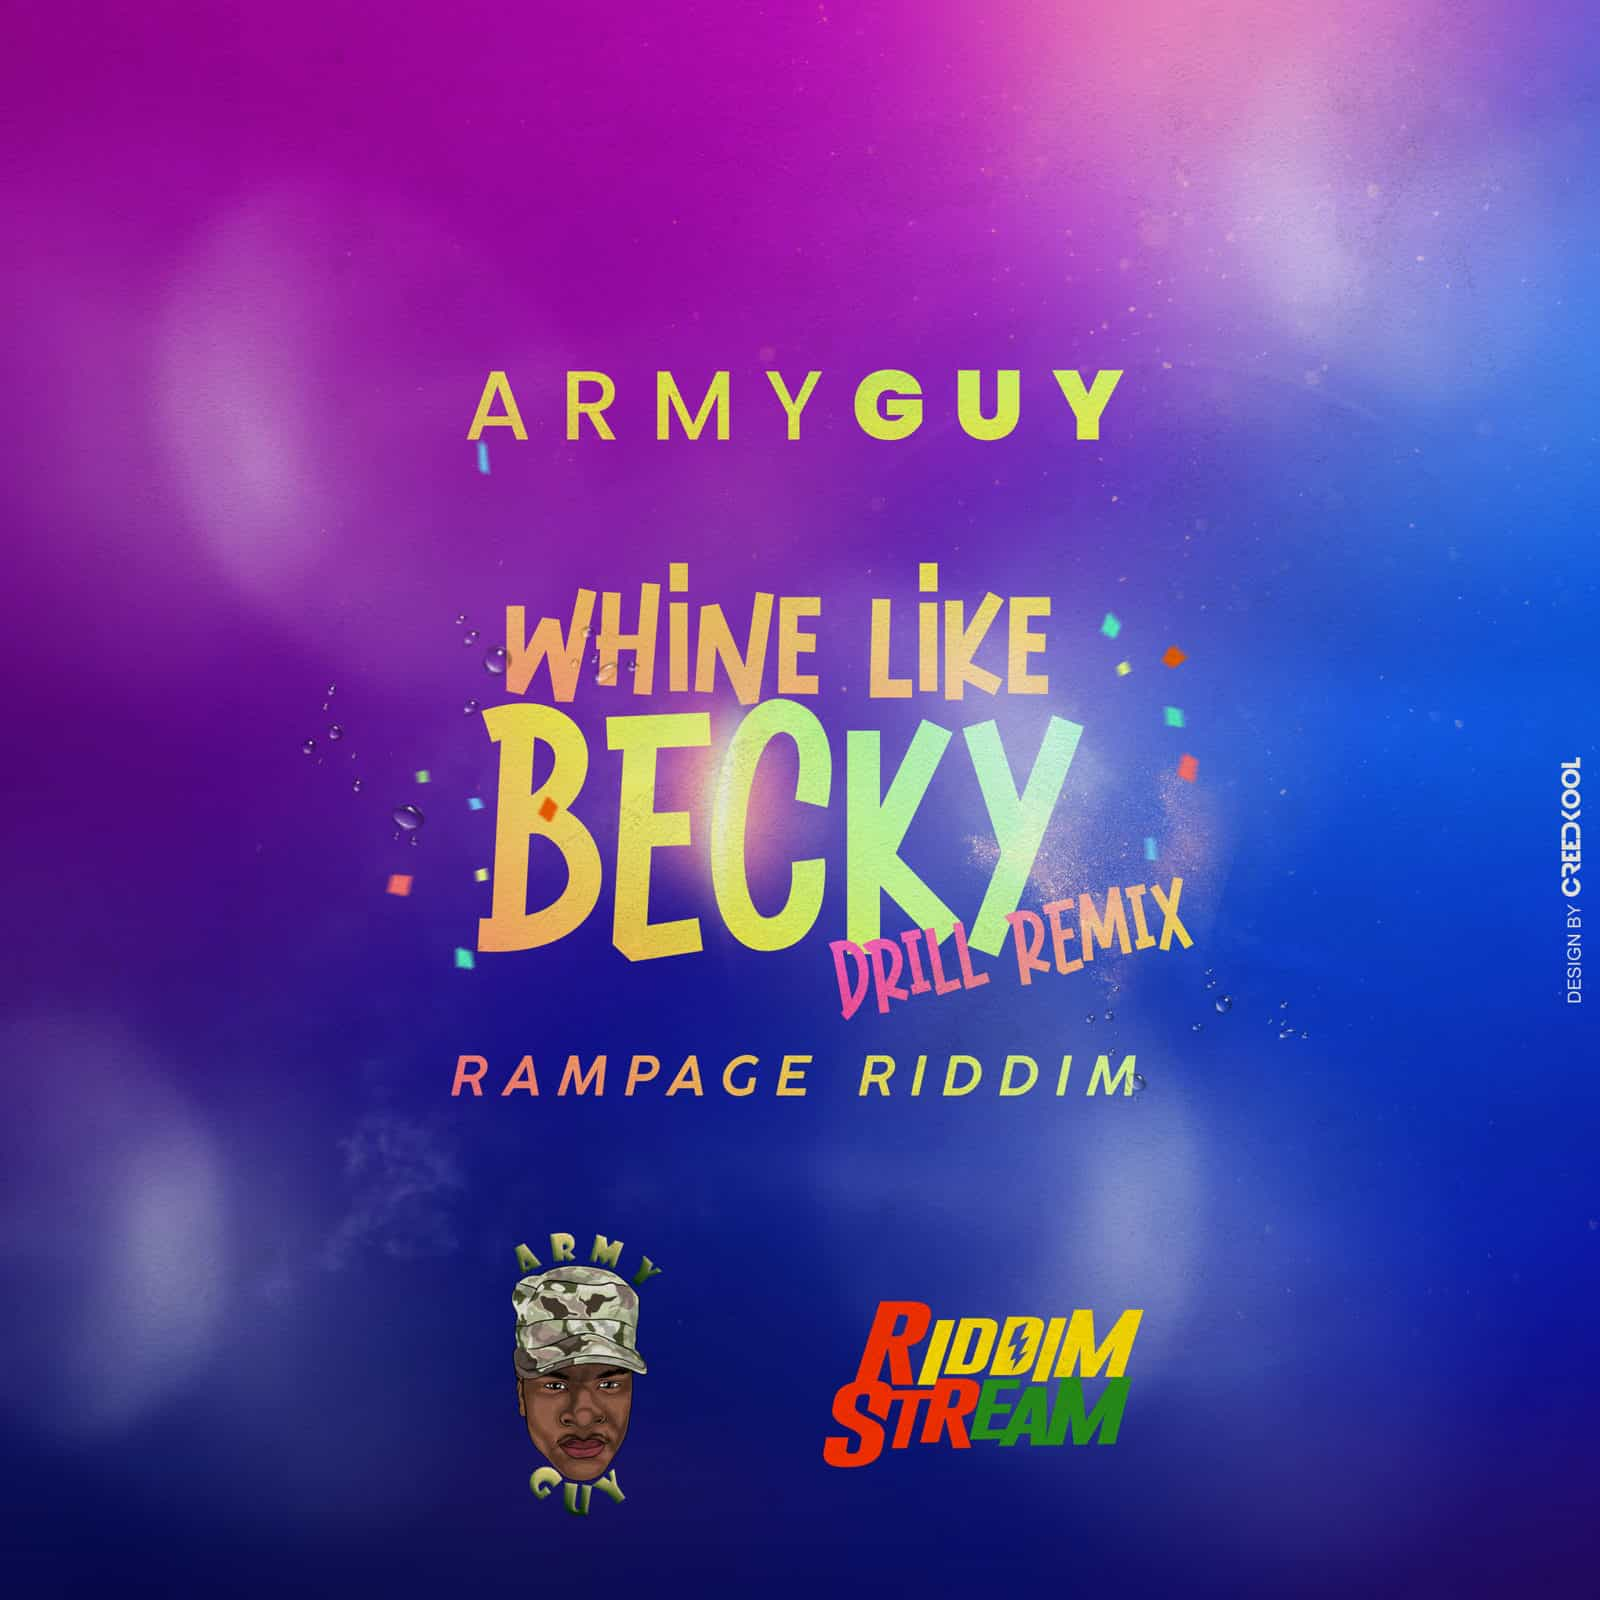 Army Guy - Whine Like Becky (Rampage Riddim) (Drill Remix)